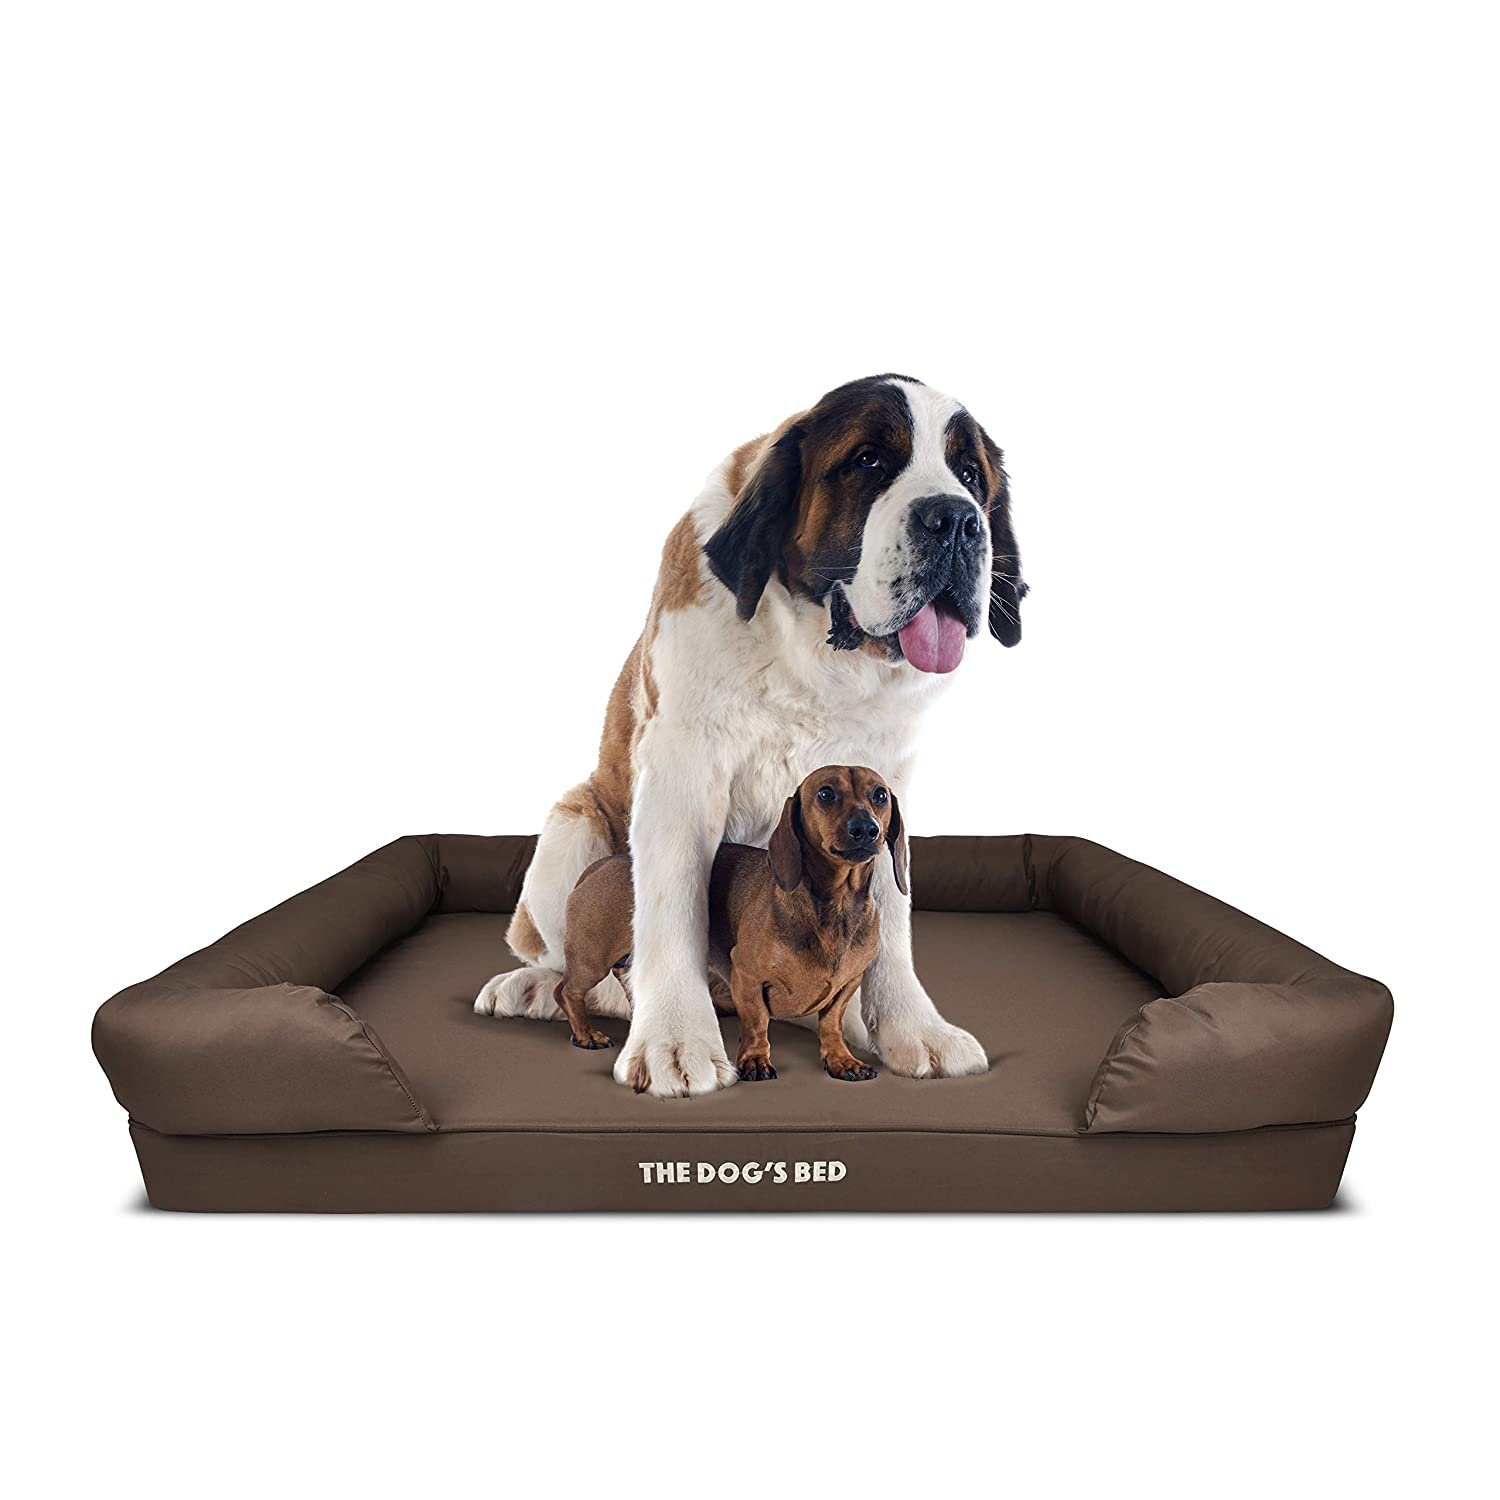 e24ebd0a0d74 The Dog's Bed, Premium Orthopedic Dog Beds, 4 Sizes 4 Colors, Waterproof,  Memory Foam Eases Pet Arthritis, Hip Dysplasia & Post Op Pain, Quality  Calming ...